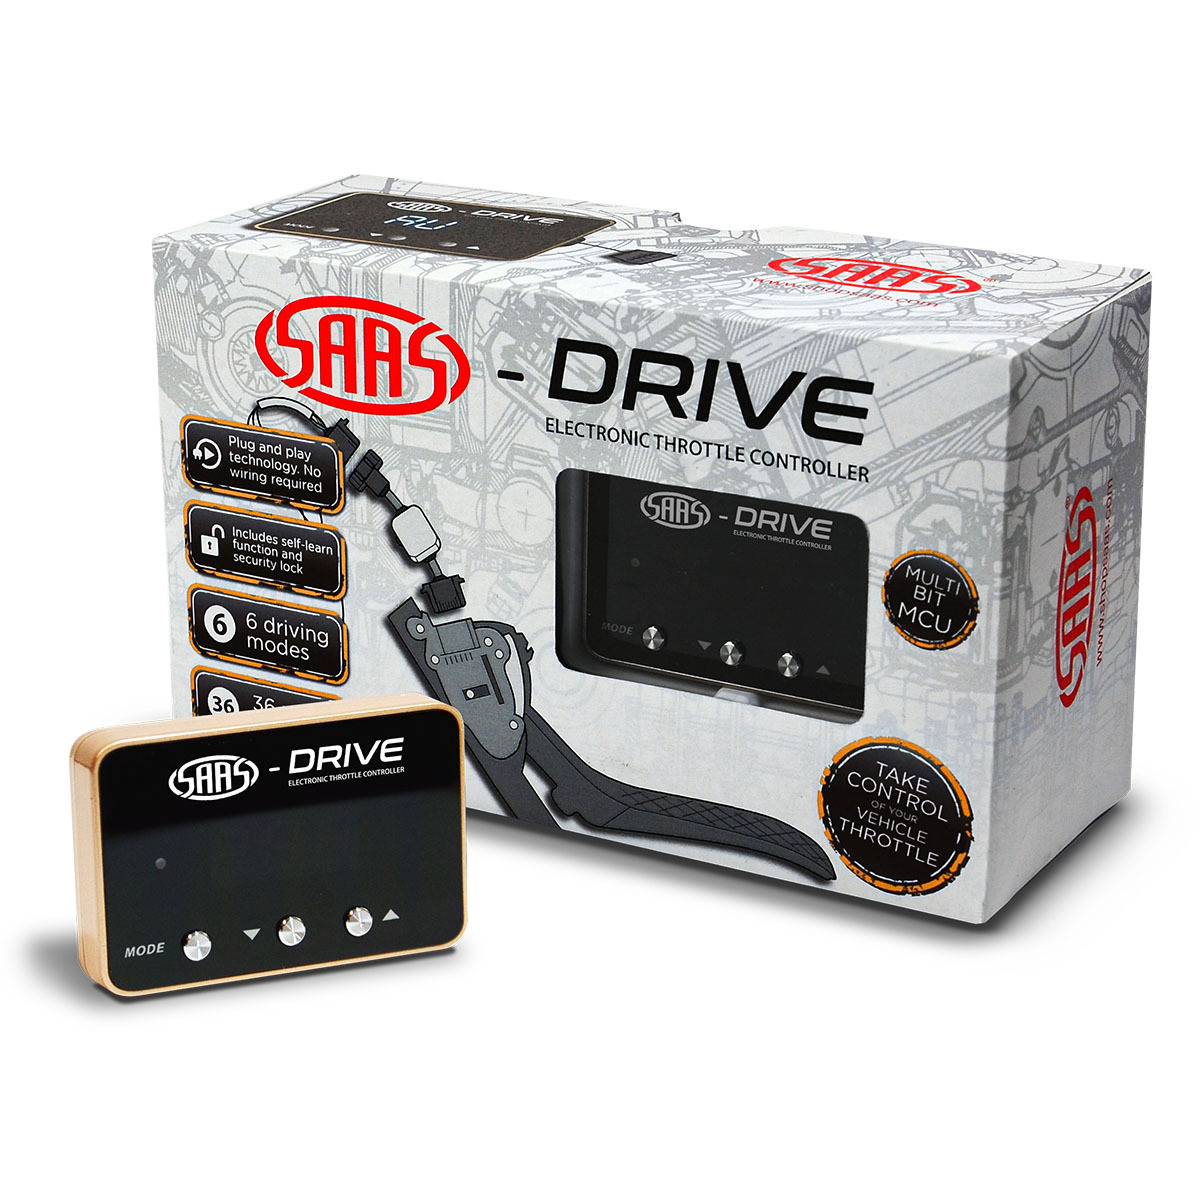 SAAS-Drive Nissan Livina L10 2006 - 2013 Throttle Controller